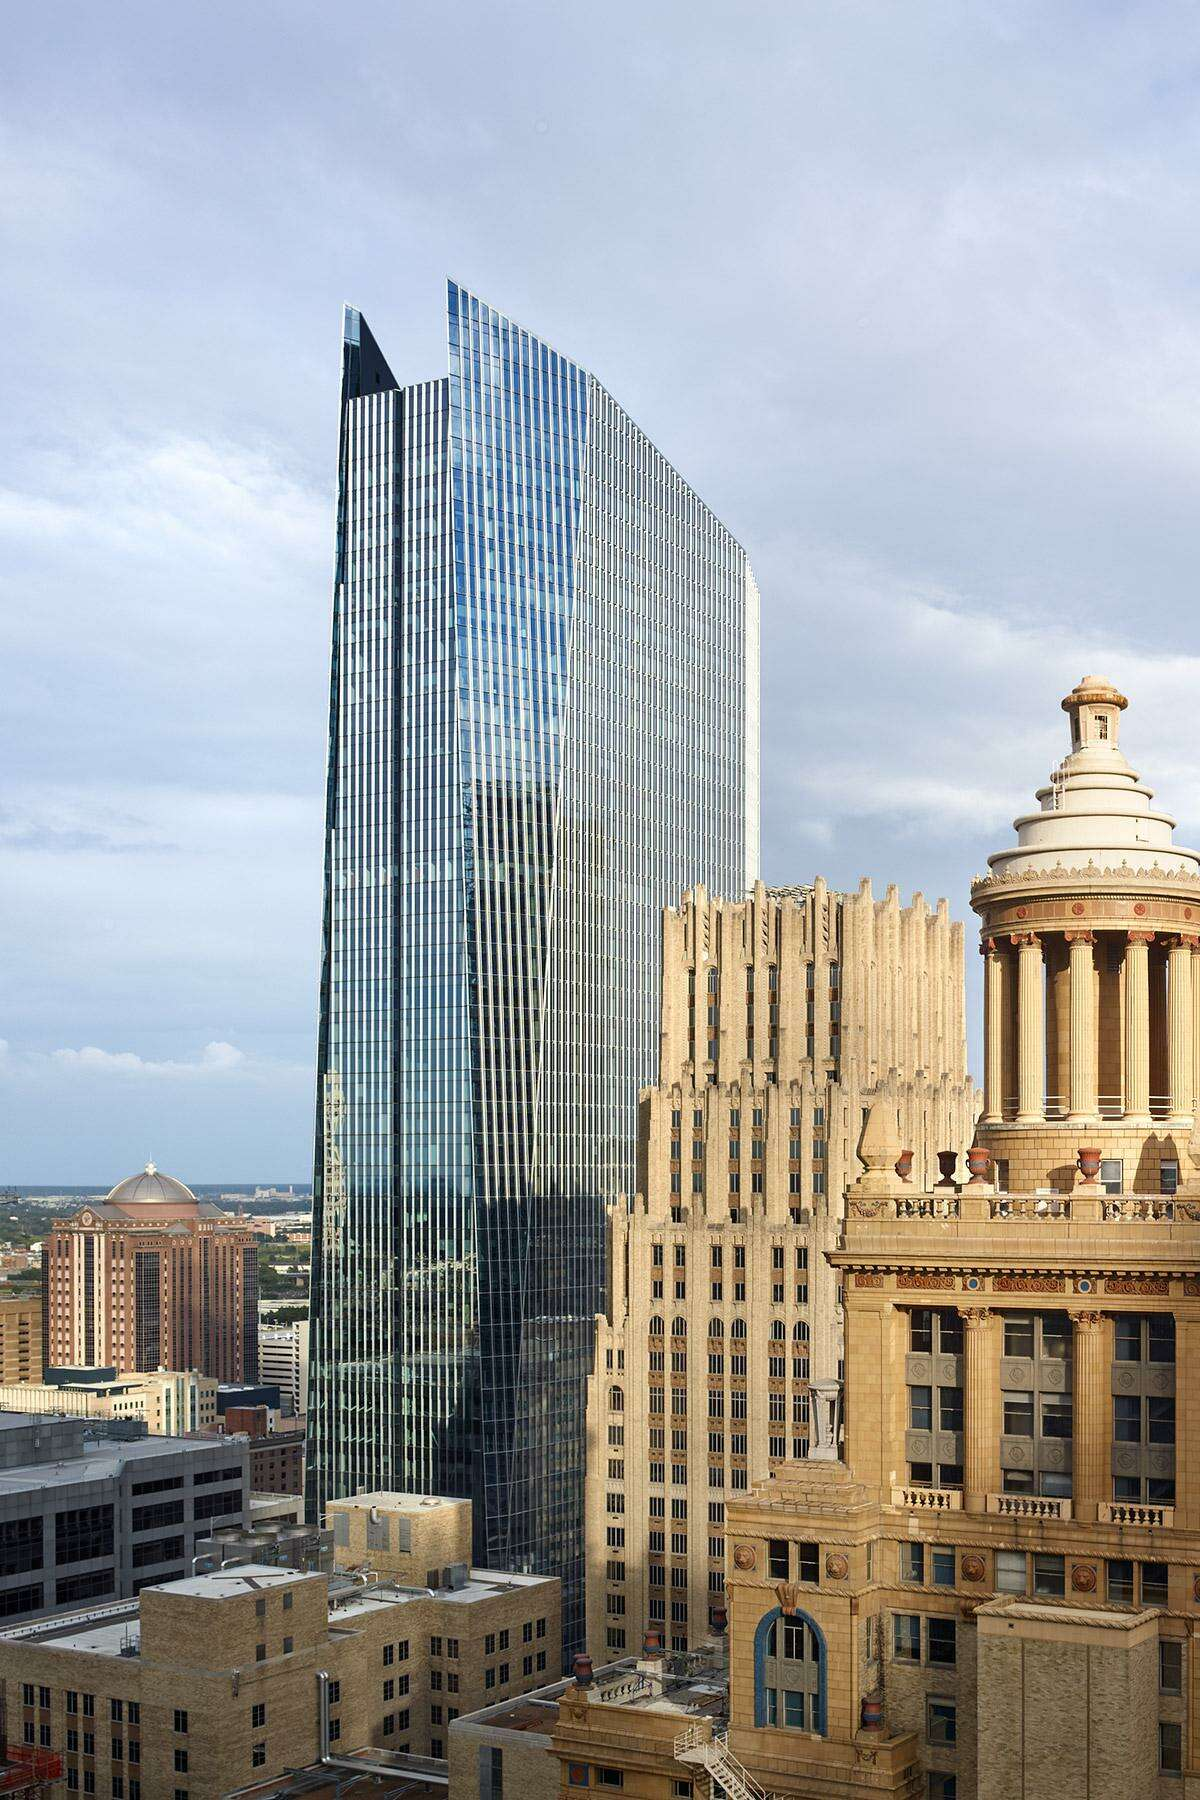 The 609 Main at Texas office building is 95 percent occupied with the signing a new lease byJAMS. Hines, a global developer based in Houston, completed the building in 2017.